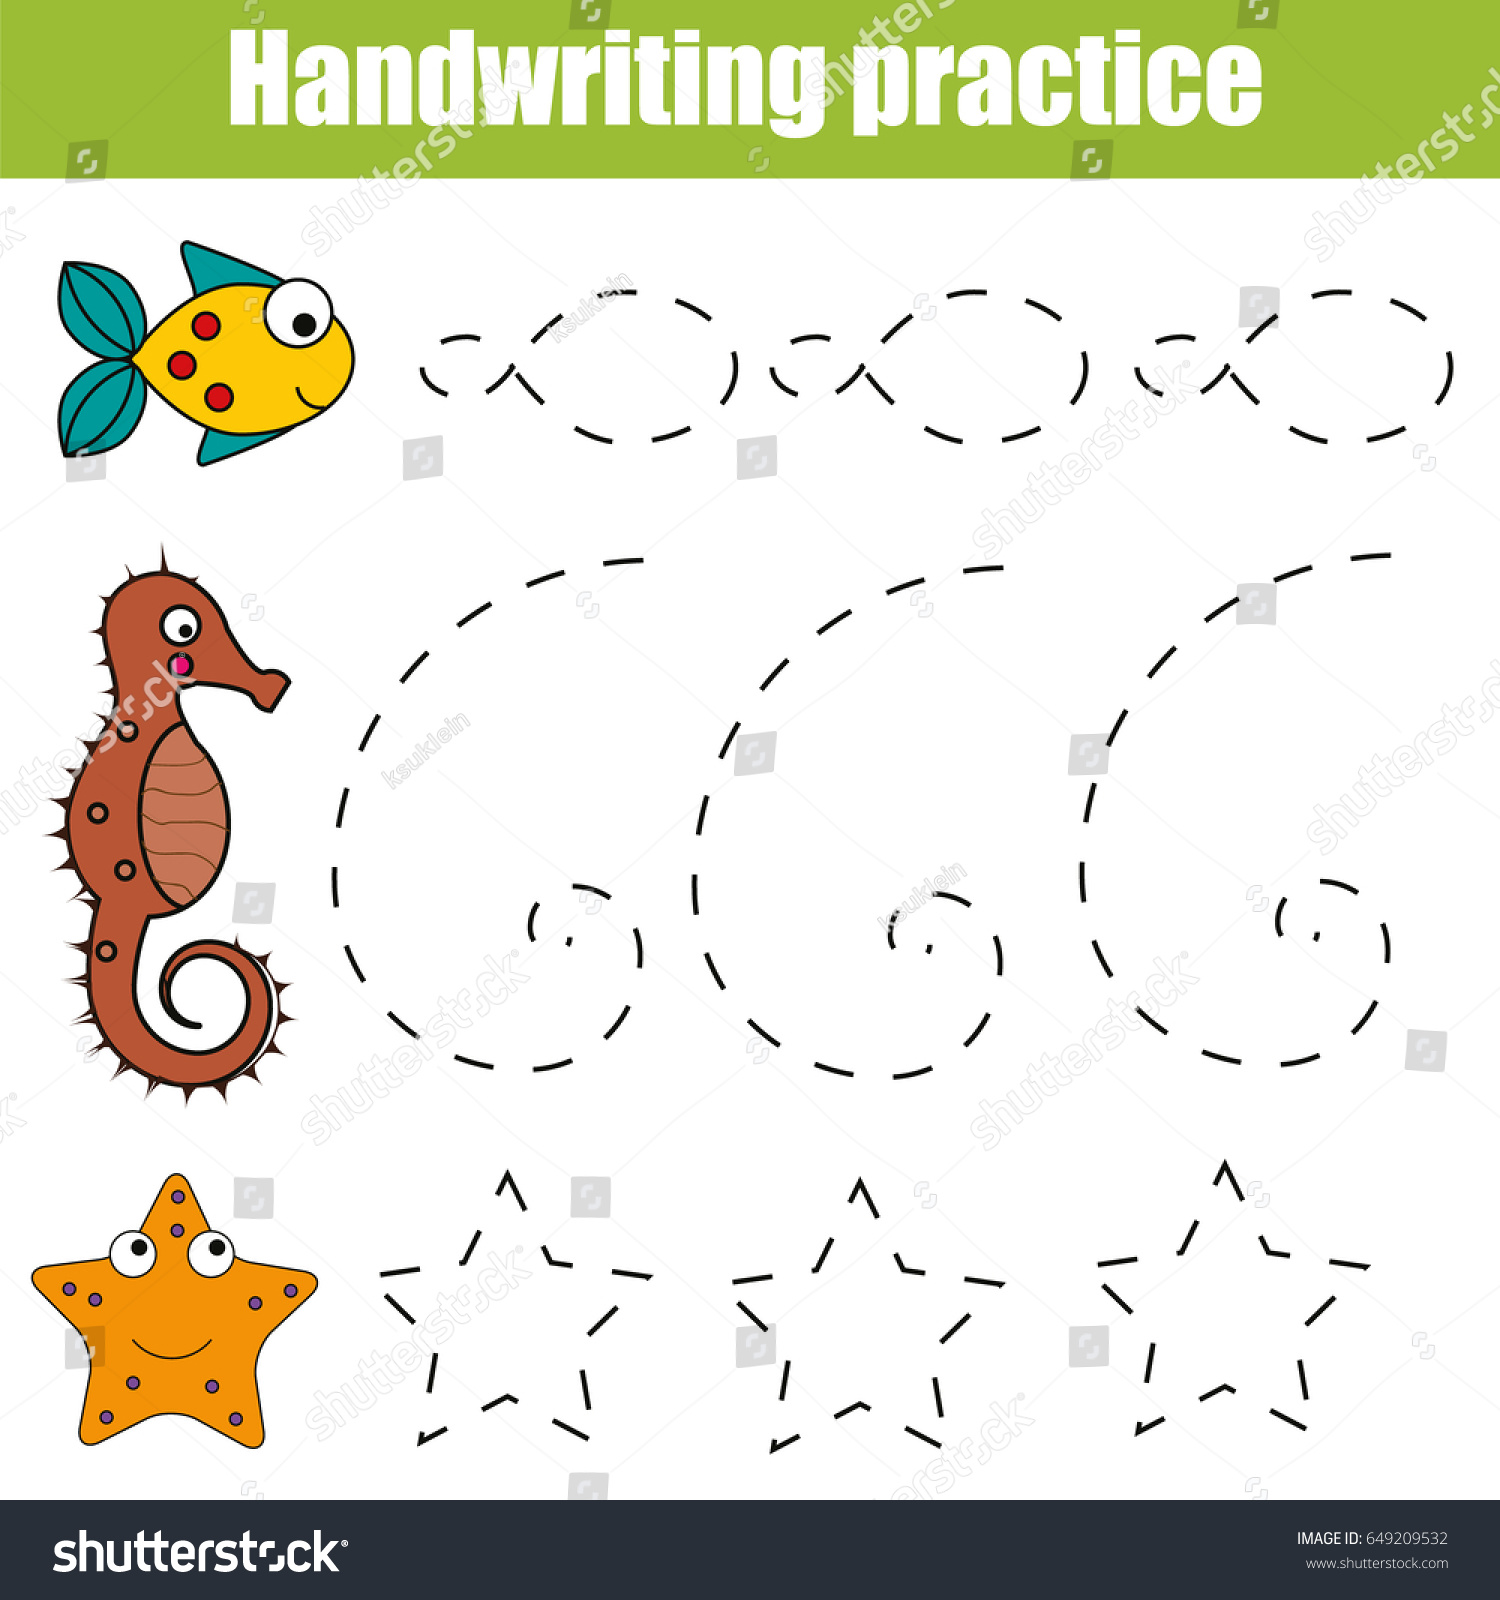 Handwriting Practice Sheet Educational Children Game Stock Vector